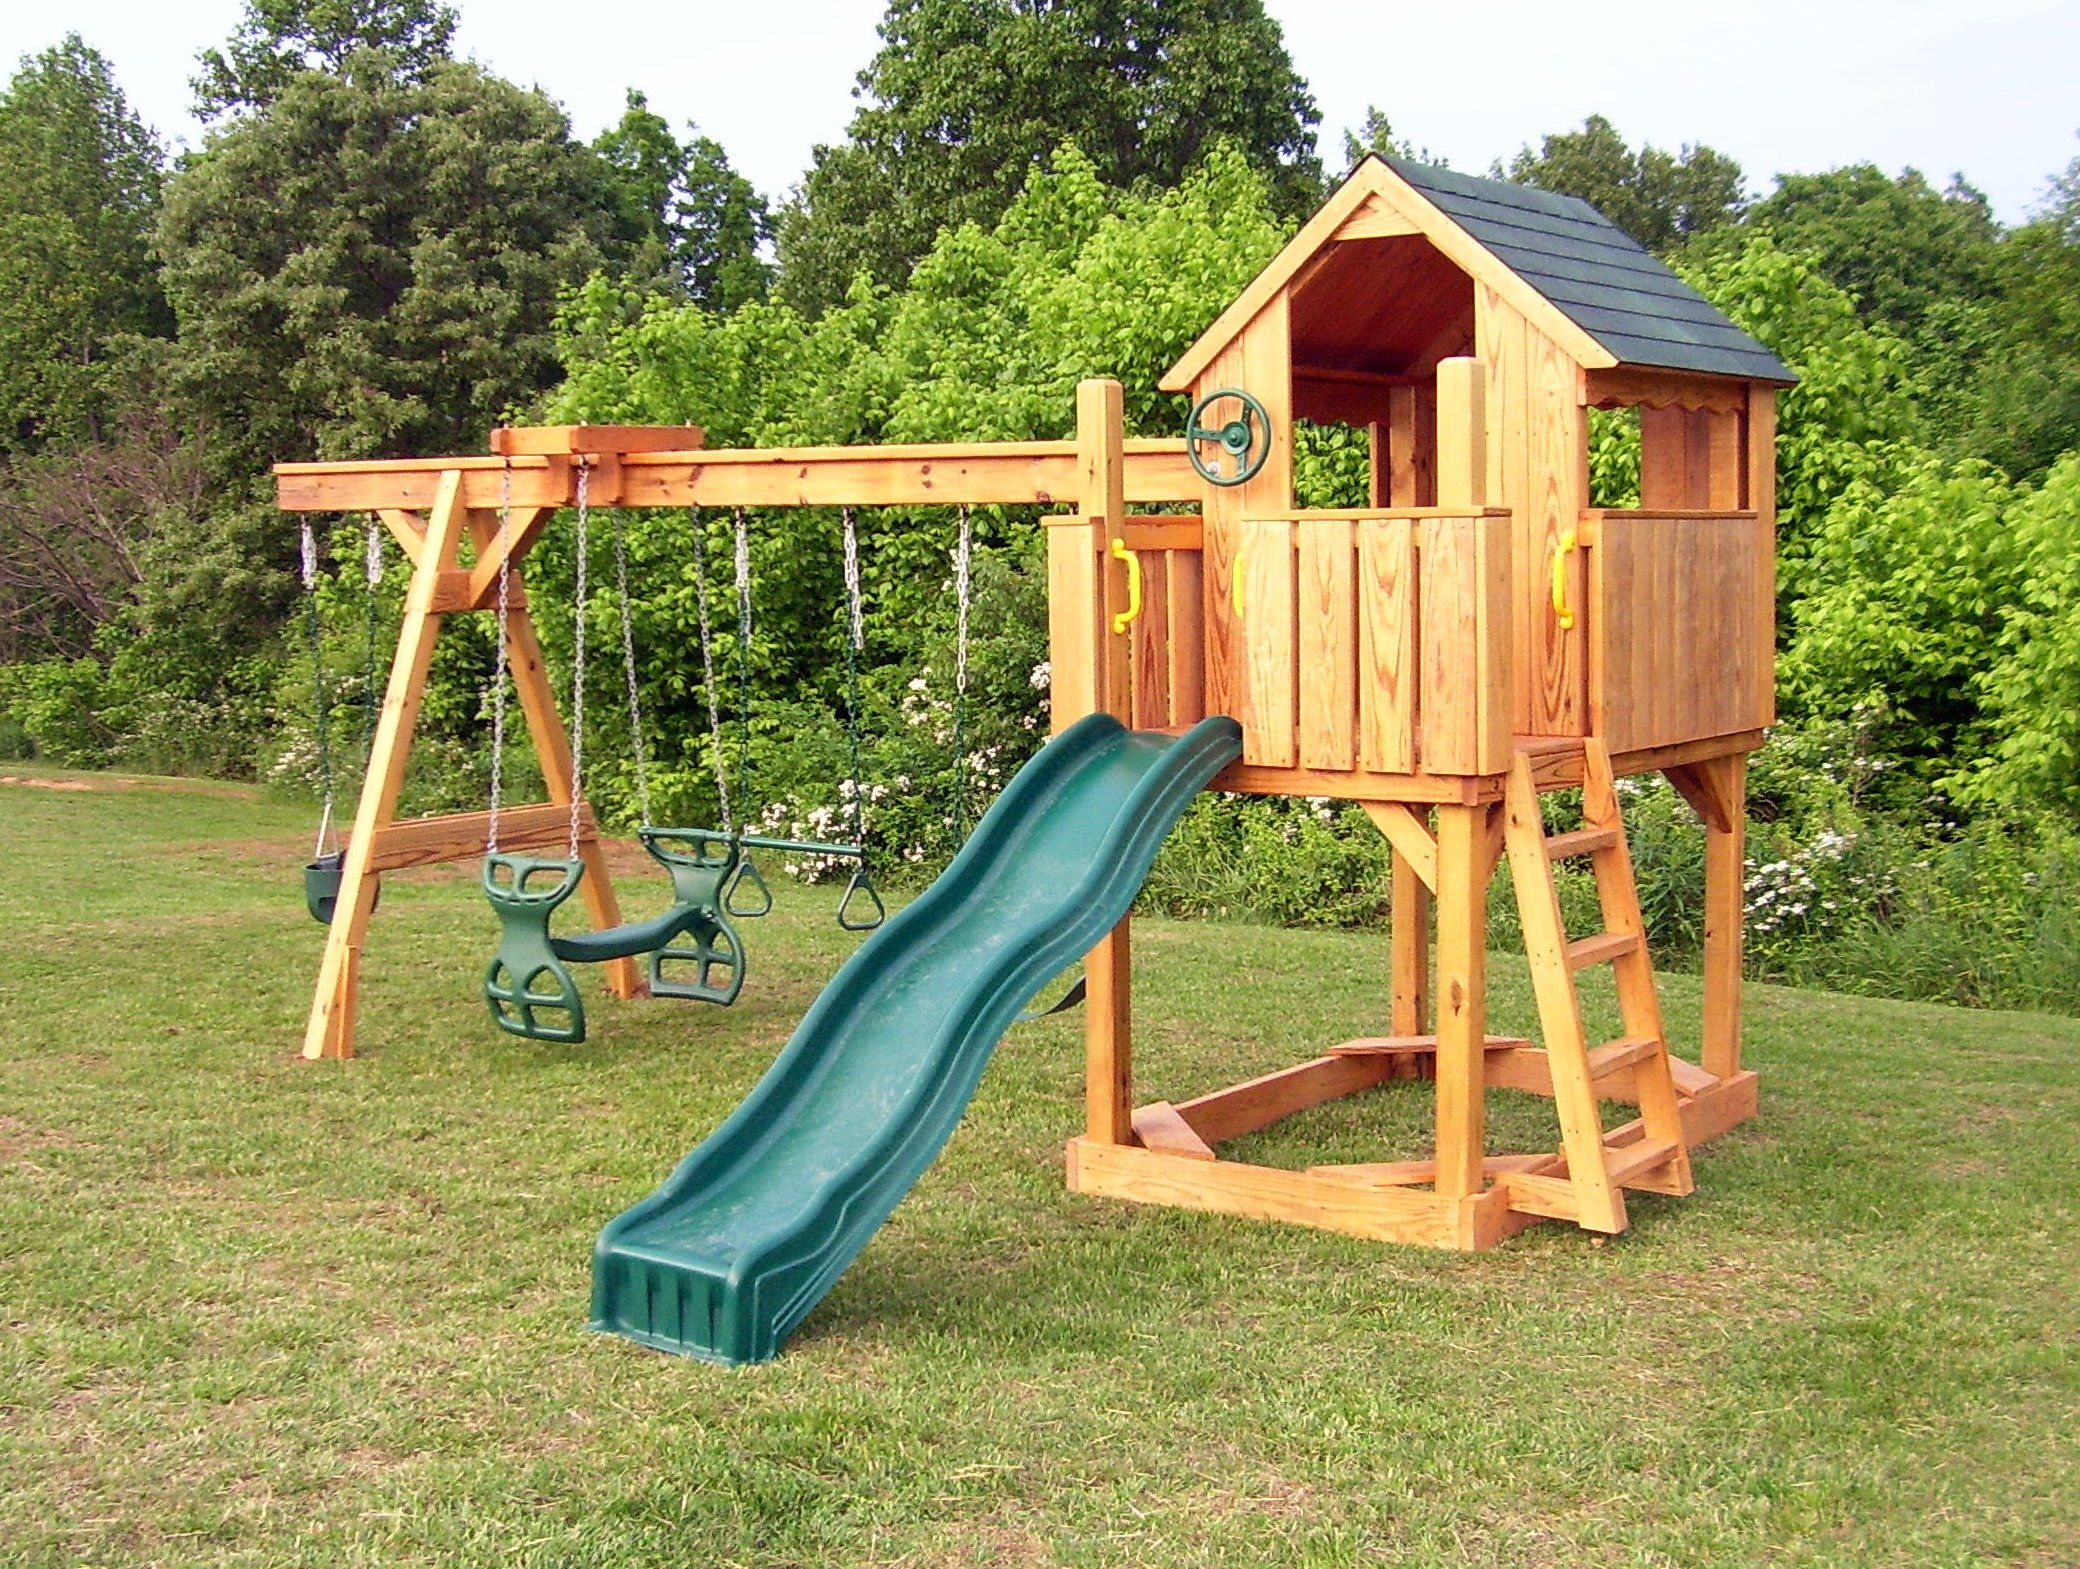 playset craigslist If we can t sell the house